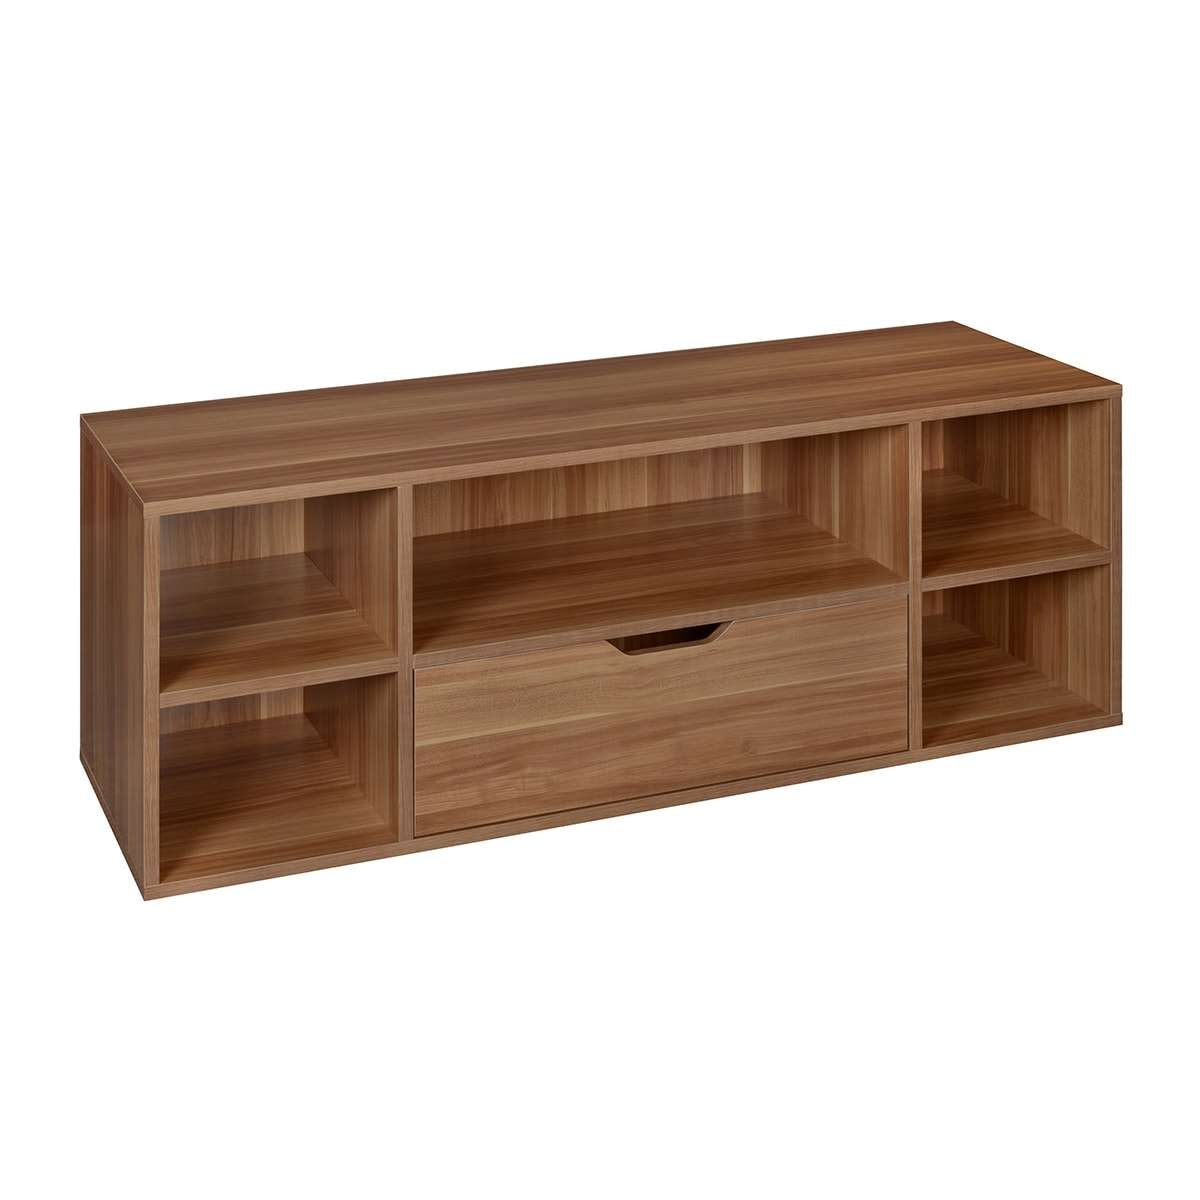 Niche Mod Wood Tv Stand – Free Shipping Today – Overstock In Hard Wood Tv Stands (View 13 of 15)